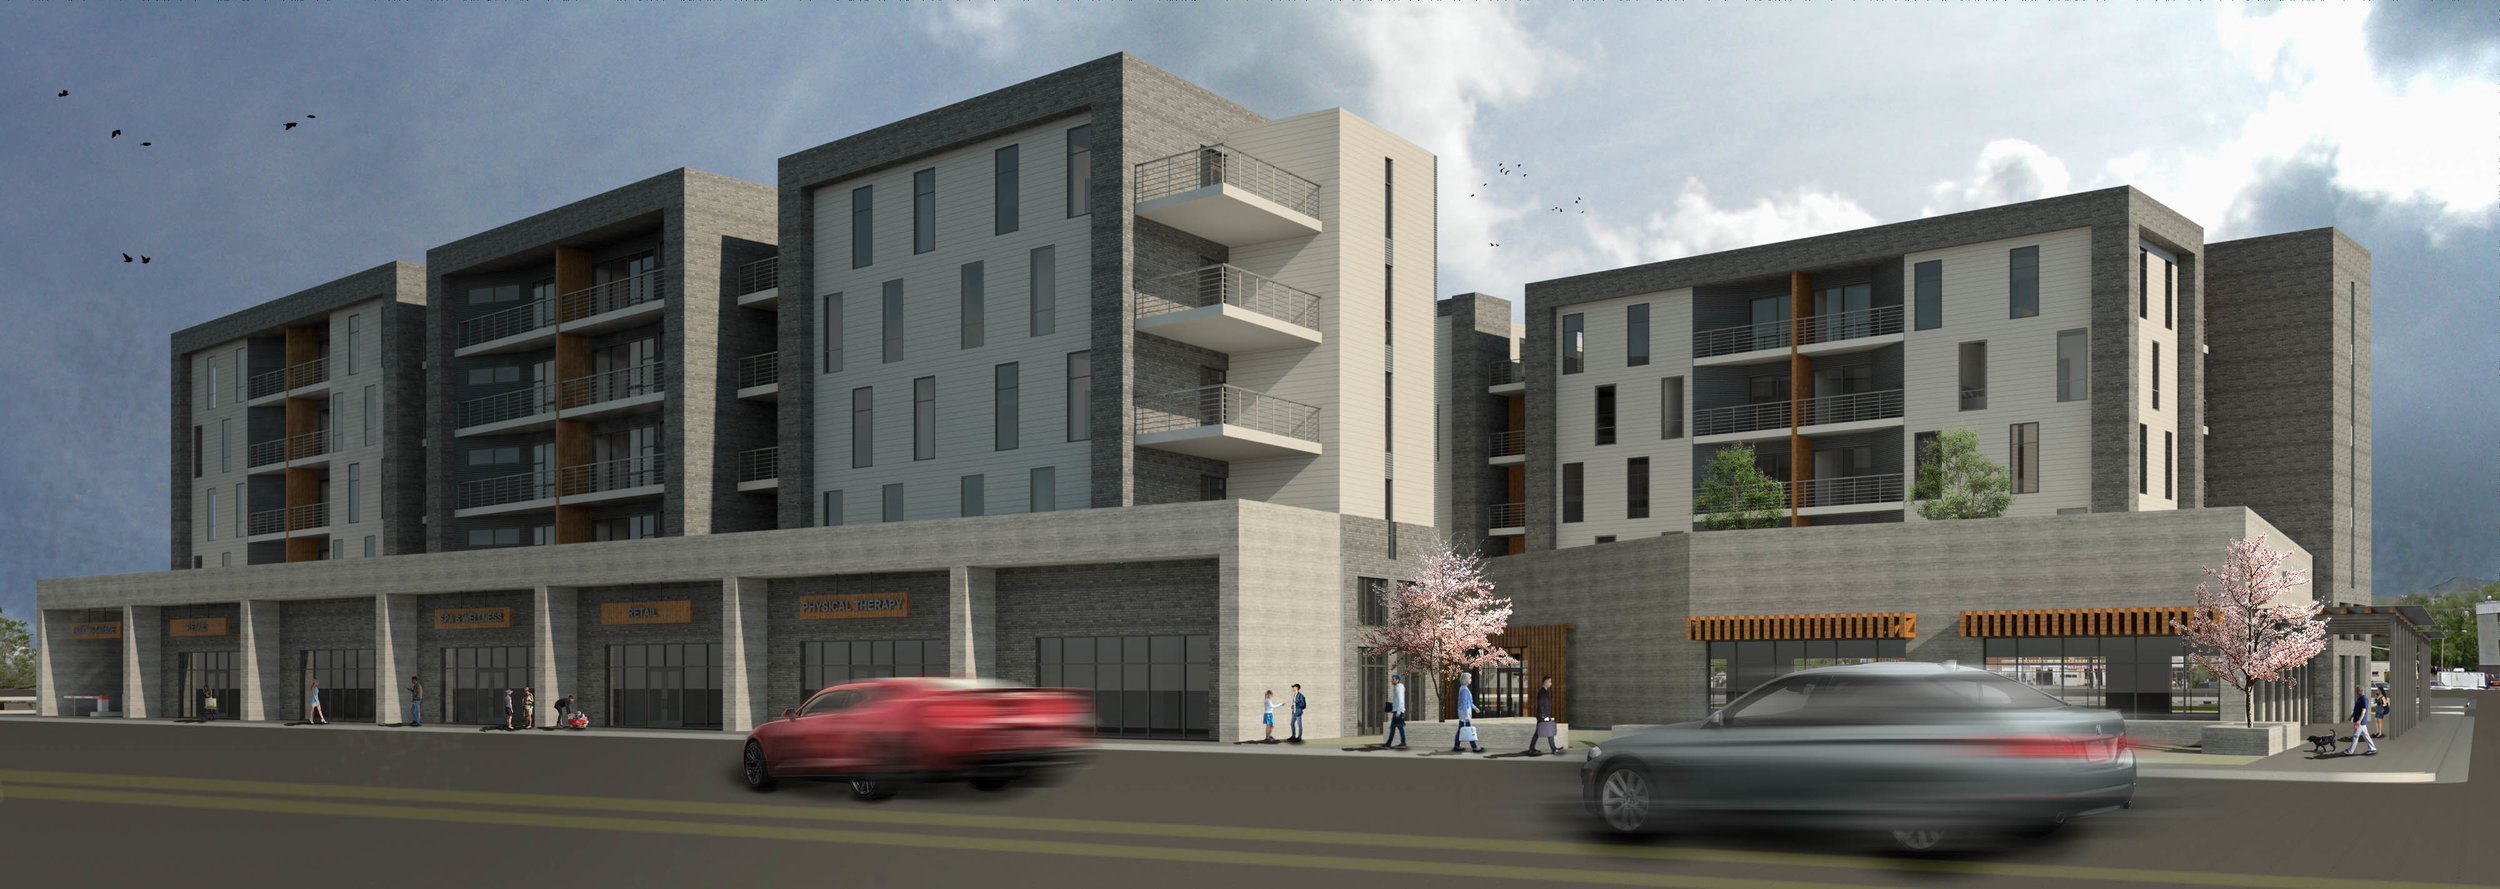 ISOLA APARTMENTS - ADDRESSING THE STREET RENDERING.jpg